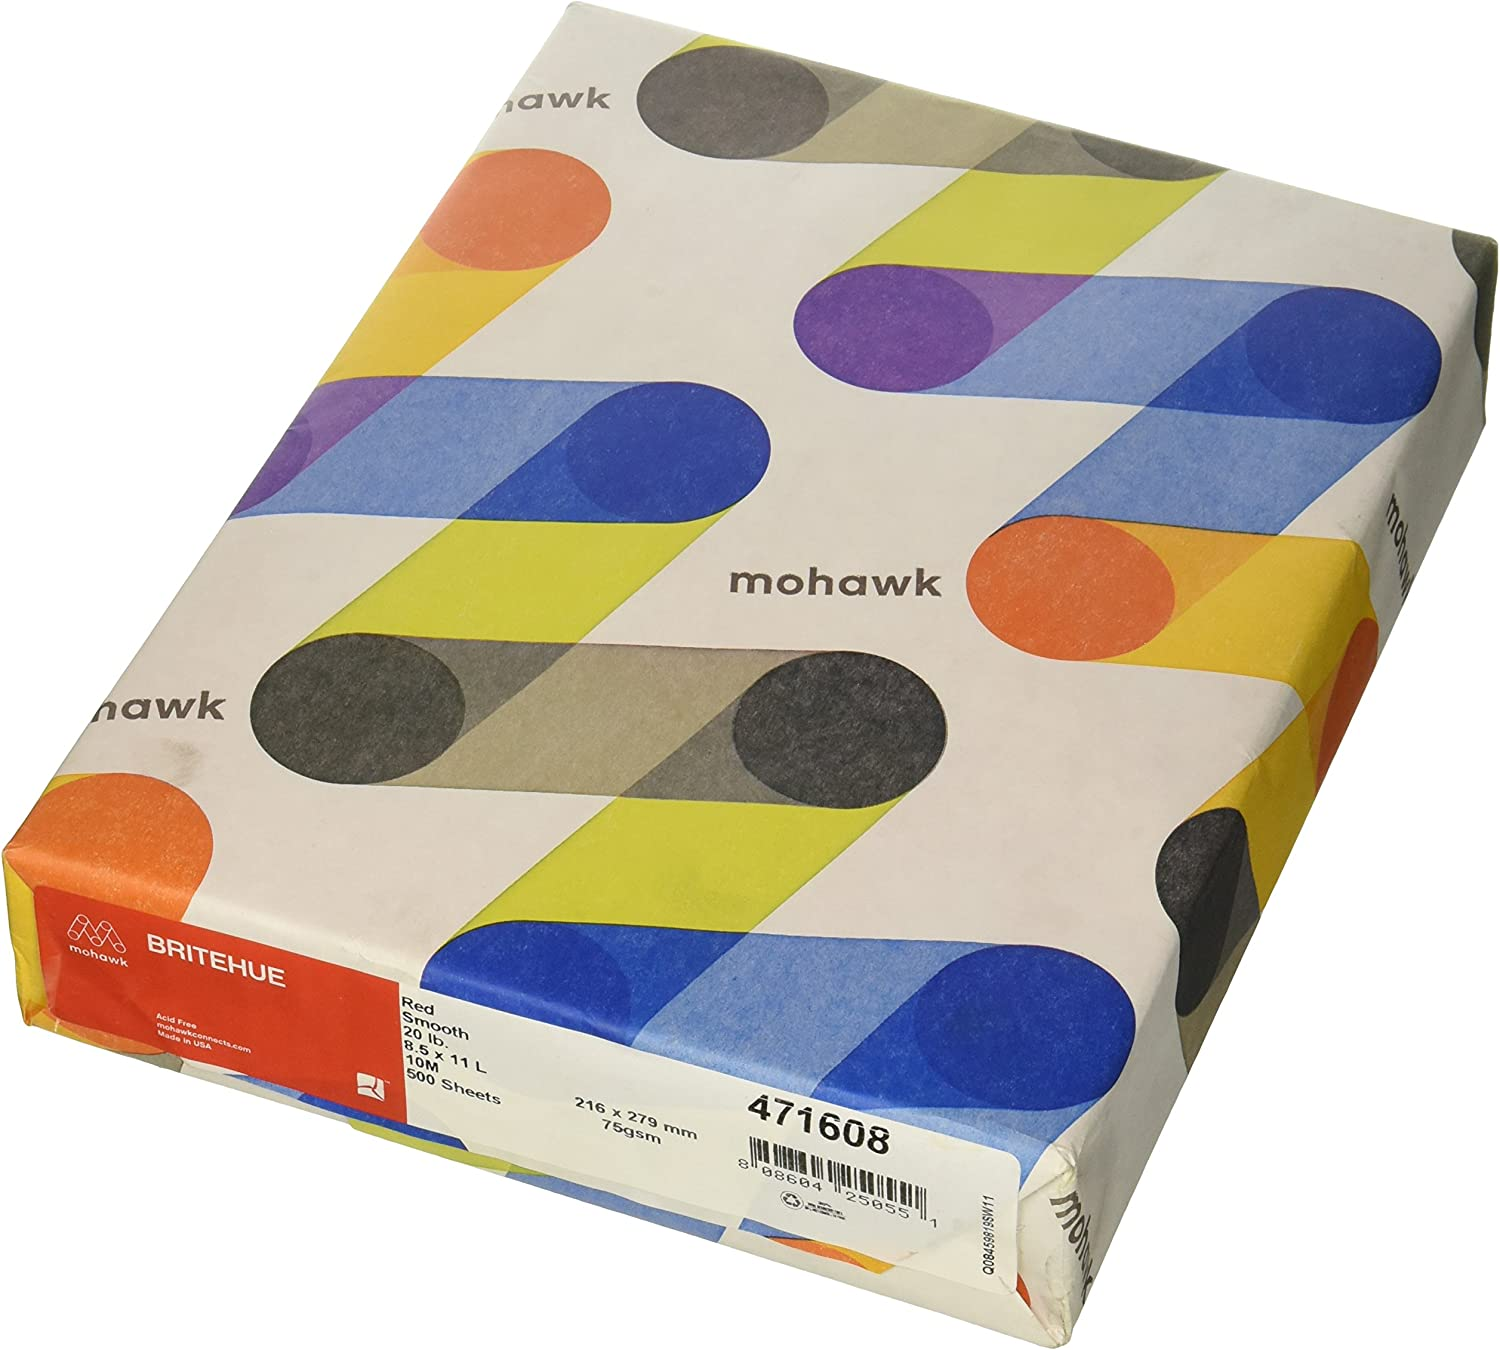 50 Sheets Per Pack Red Mohawk Britehue Bright Color Card Stock Paper 11x 17,